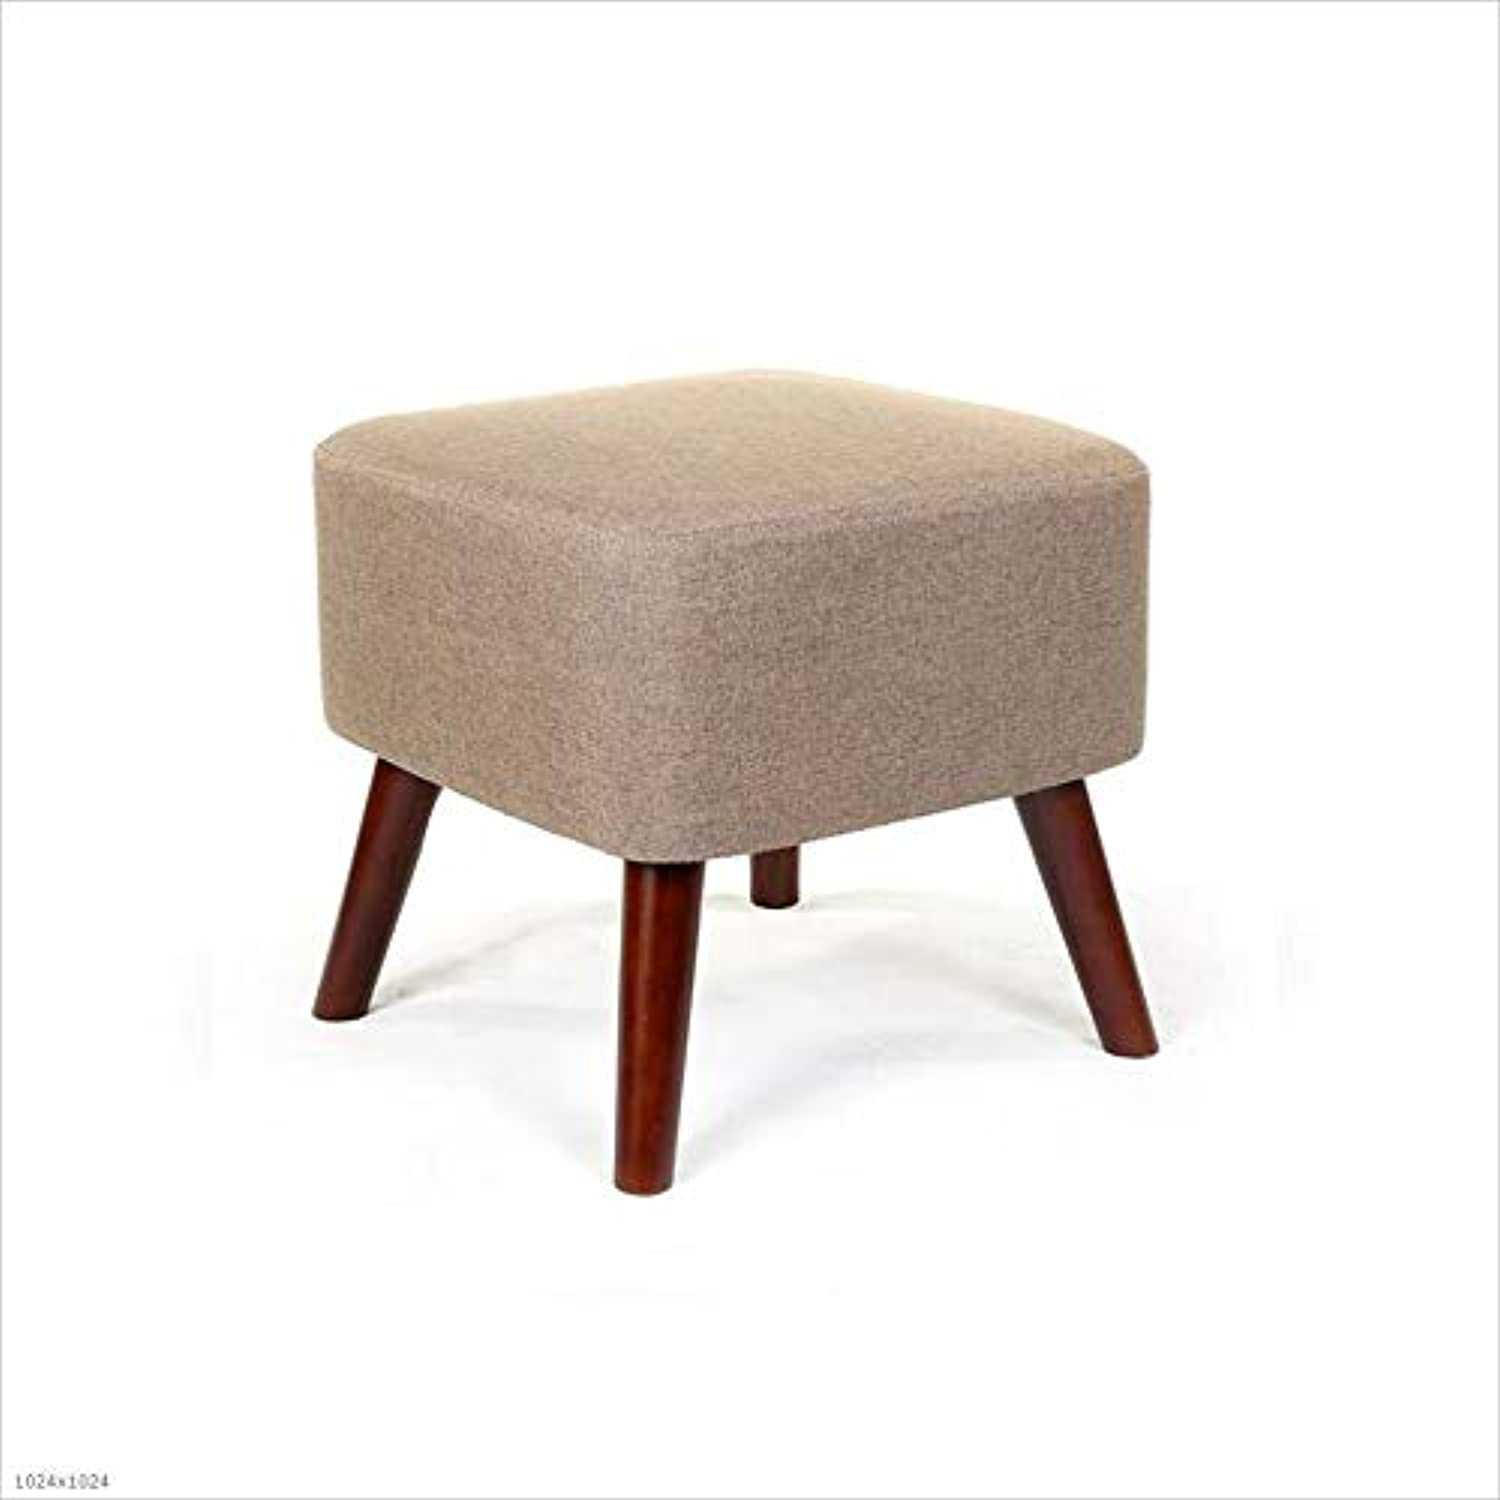 Sofa Stool Solid Wood Square Foot Bench Change shoes Stool 4X Solid Wood Legs Removable Wash Cushion H  40Cm,Lightcoffeecolor